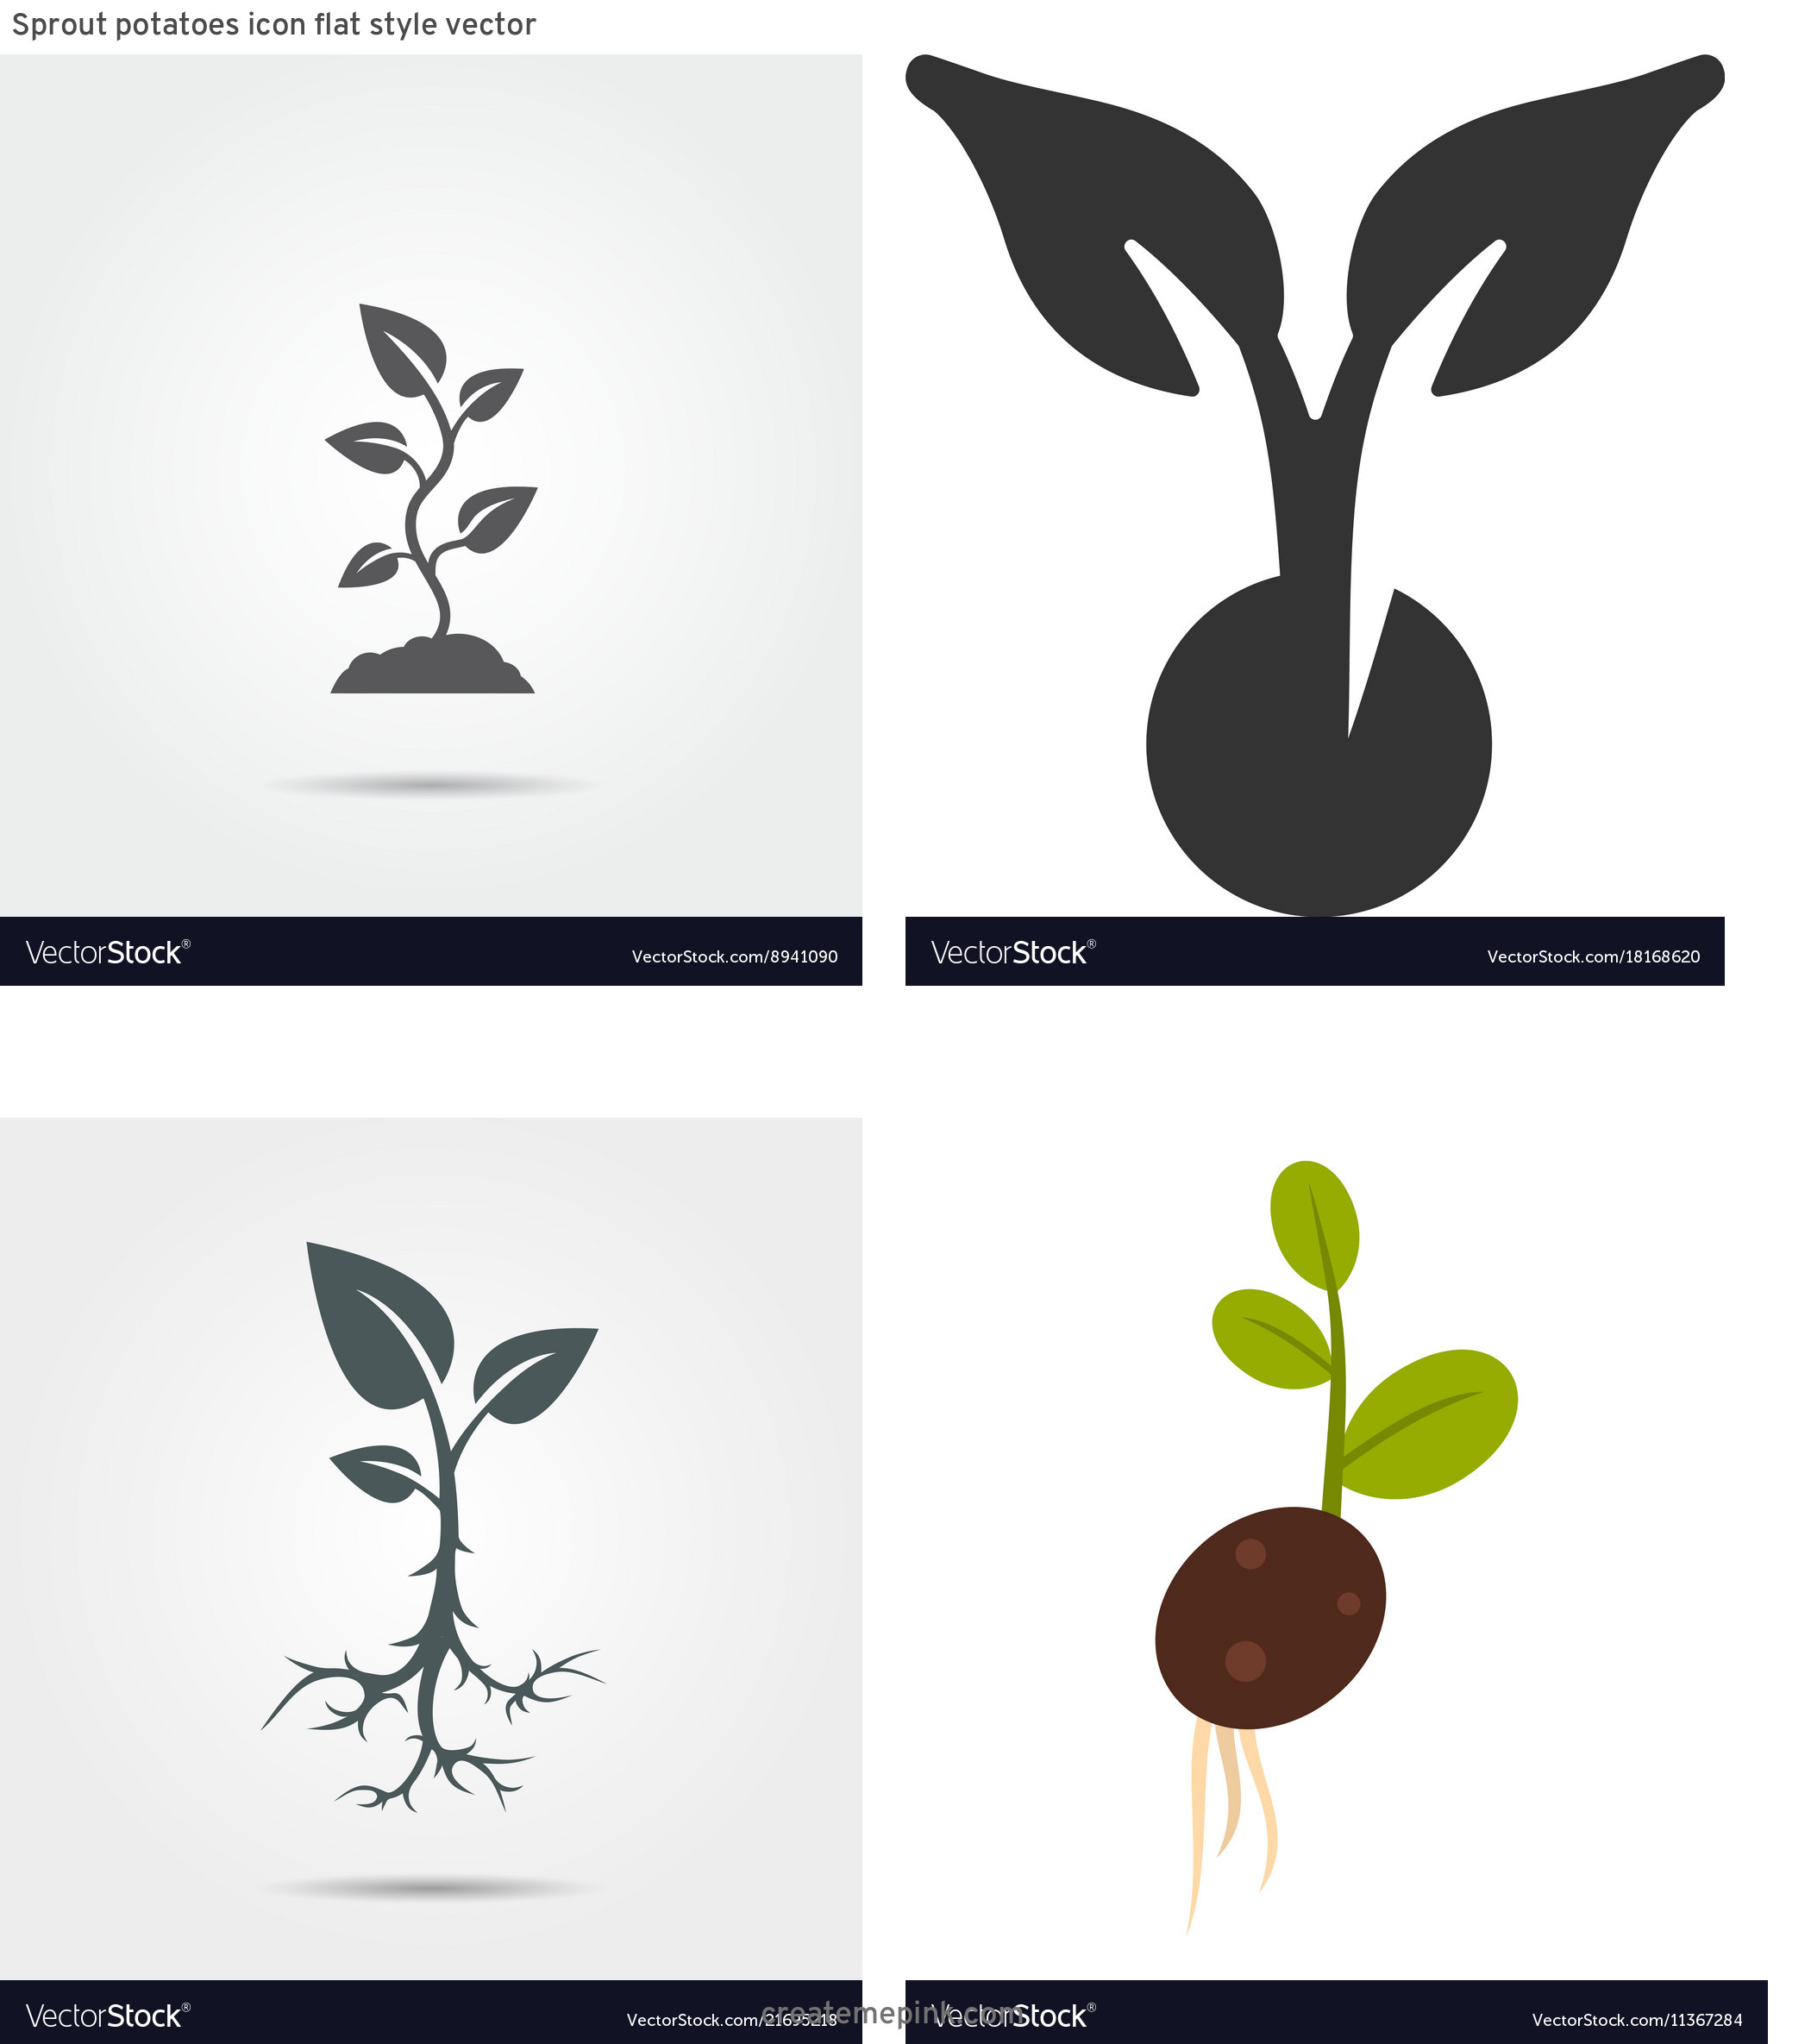 Sprout Icon Vector: Sprout Potatoes Icon Flat Style Vector